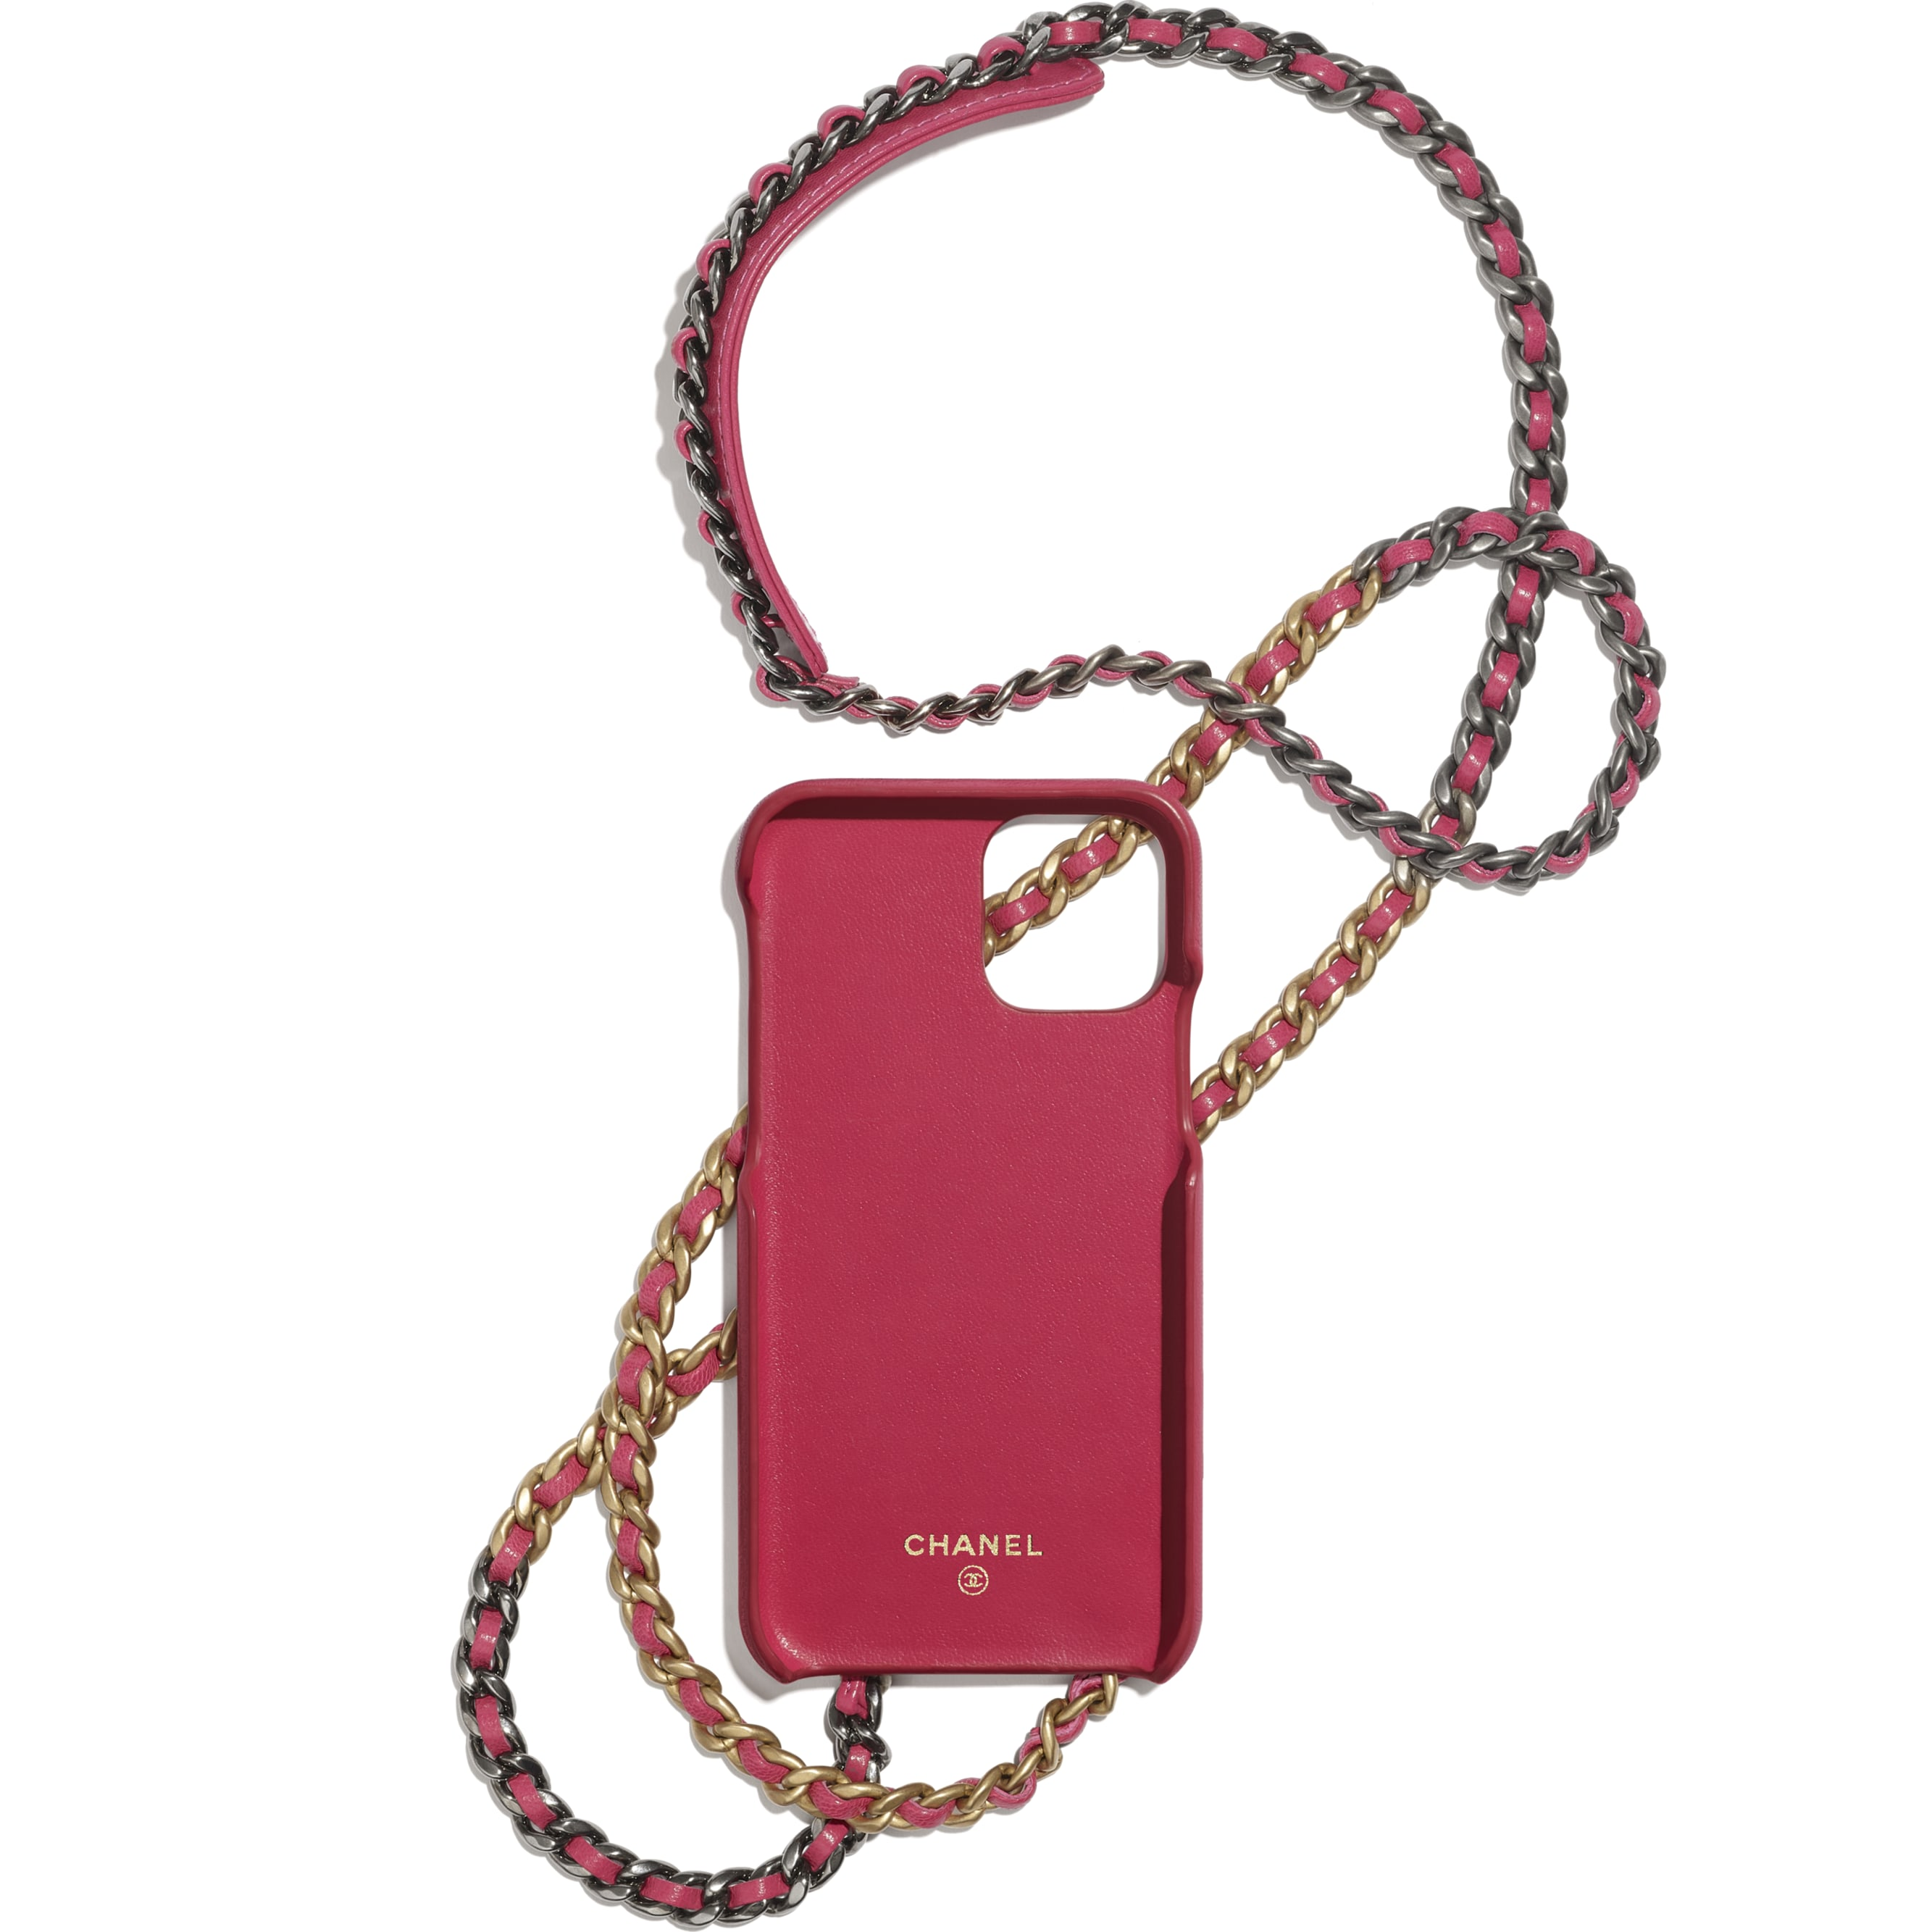 Case for iPhone XI Pro with Chain - Pink - Shiny Goatskin, Gold-Tone, Silver-Tone & Ruthenium-Finish Metal - CHANEL - Alternative view - see standard sized version